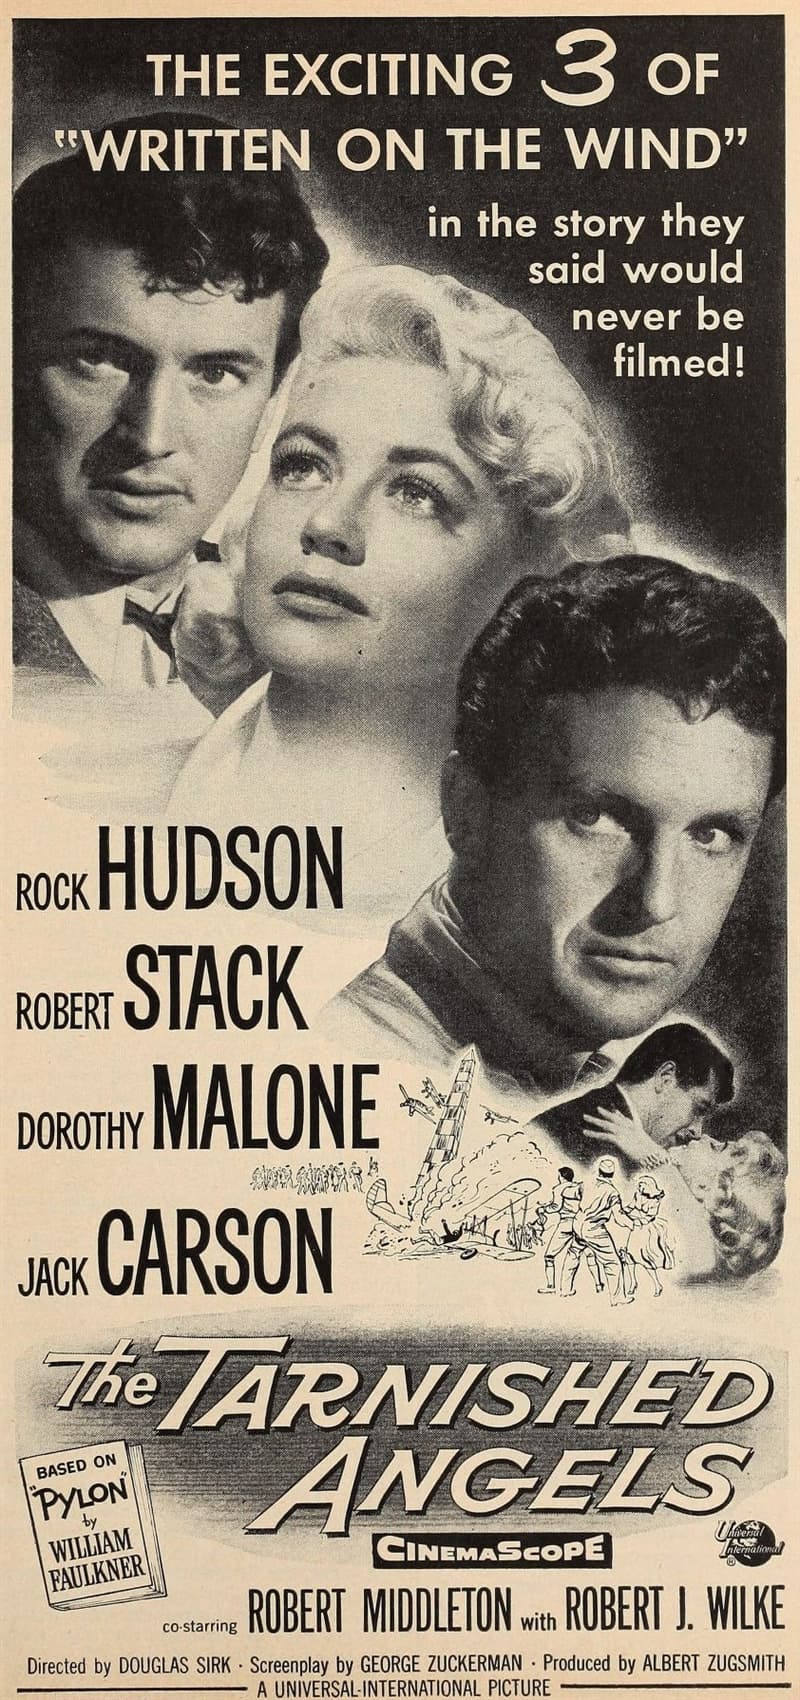 Movies & TV Story: On-screen Pilot roles of Robert Stack